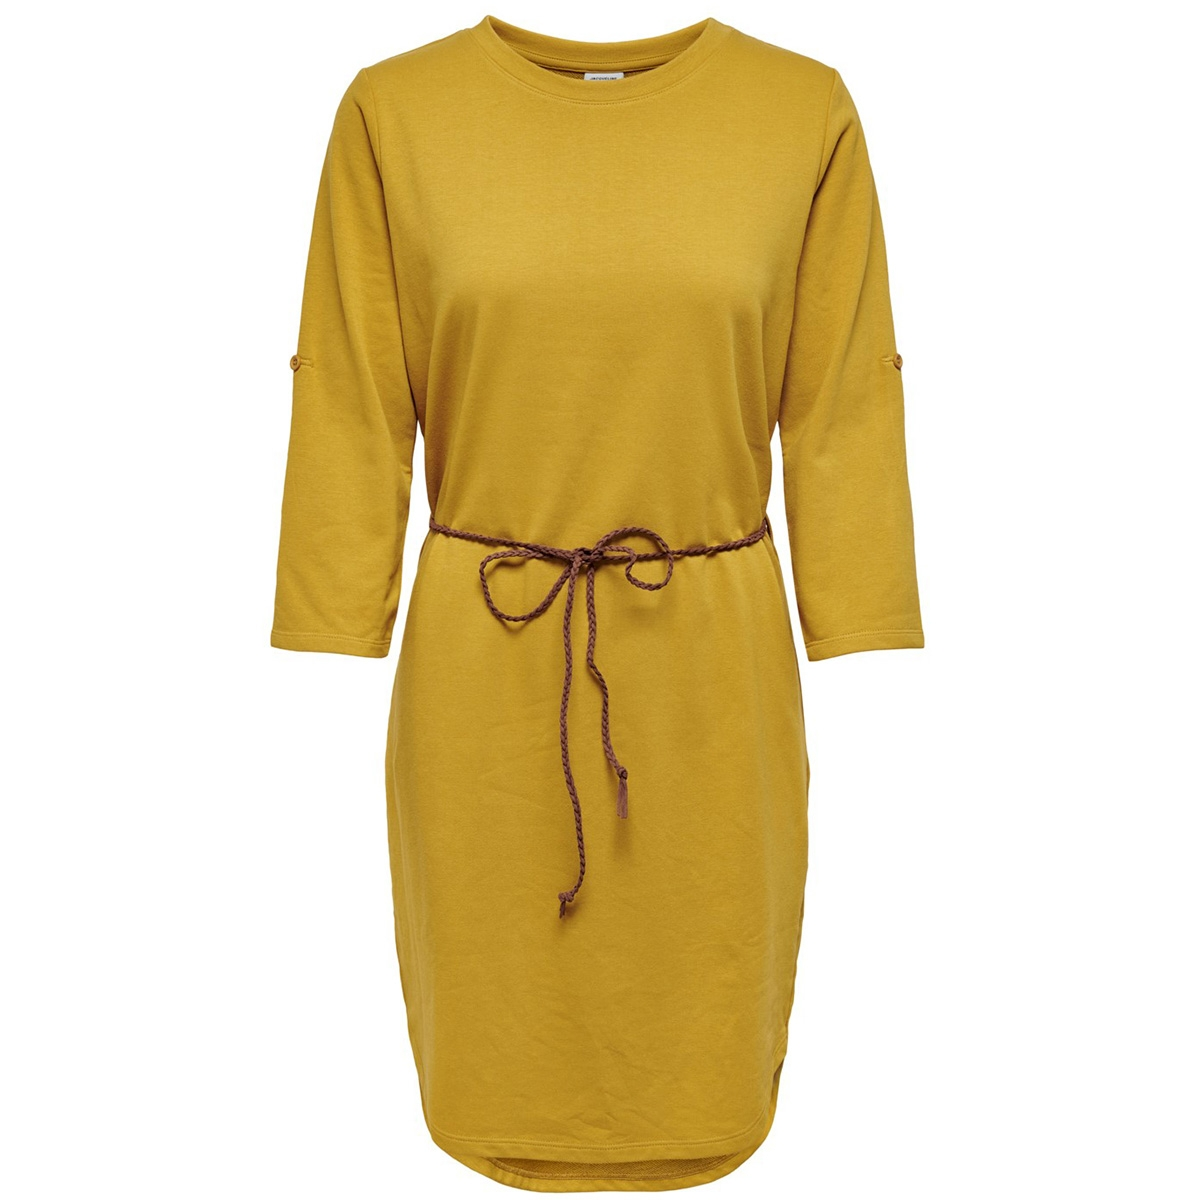 jdyivy 3/4 belt  dress jrs noos 15184136 jacqueline de yong jurk harvest gold/fake suede